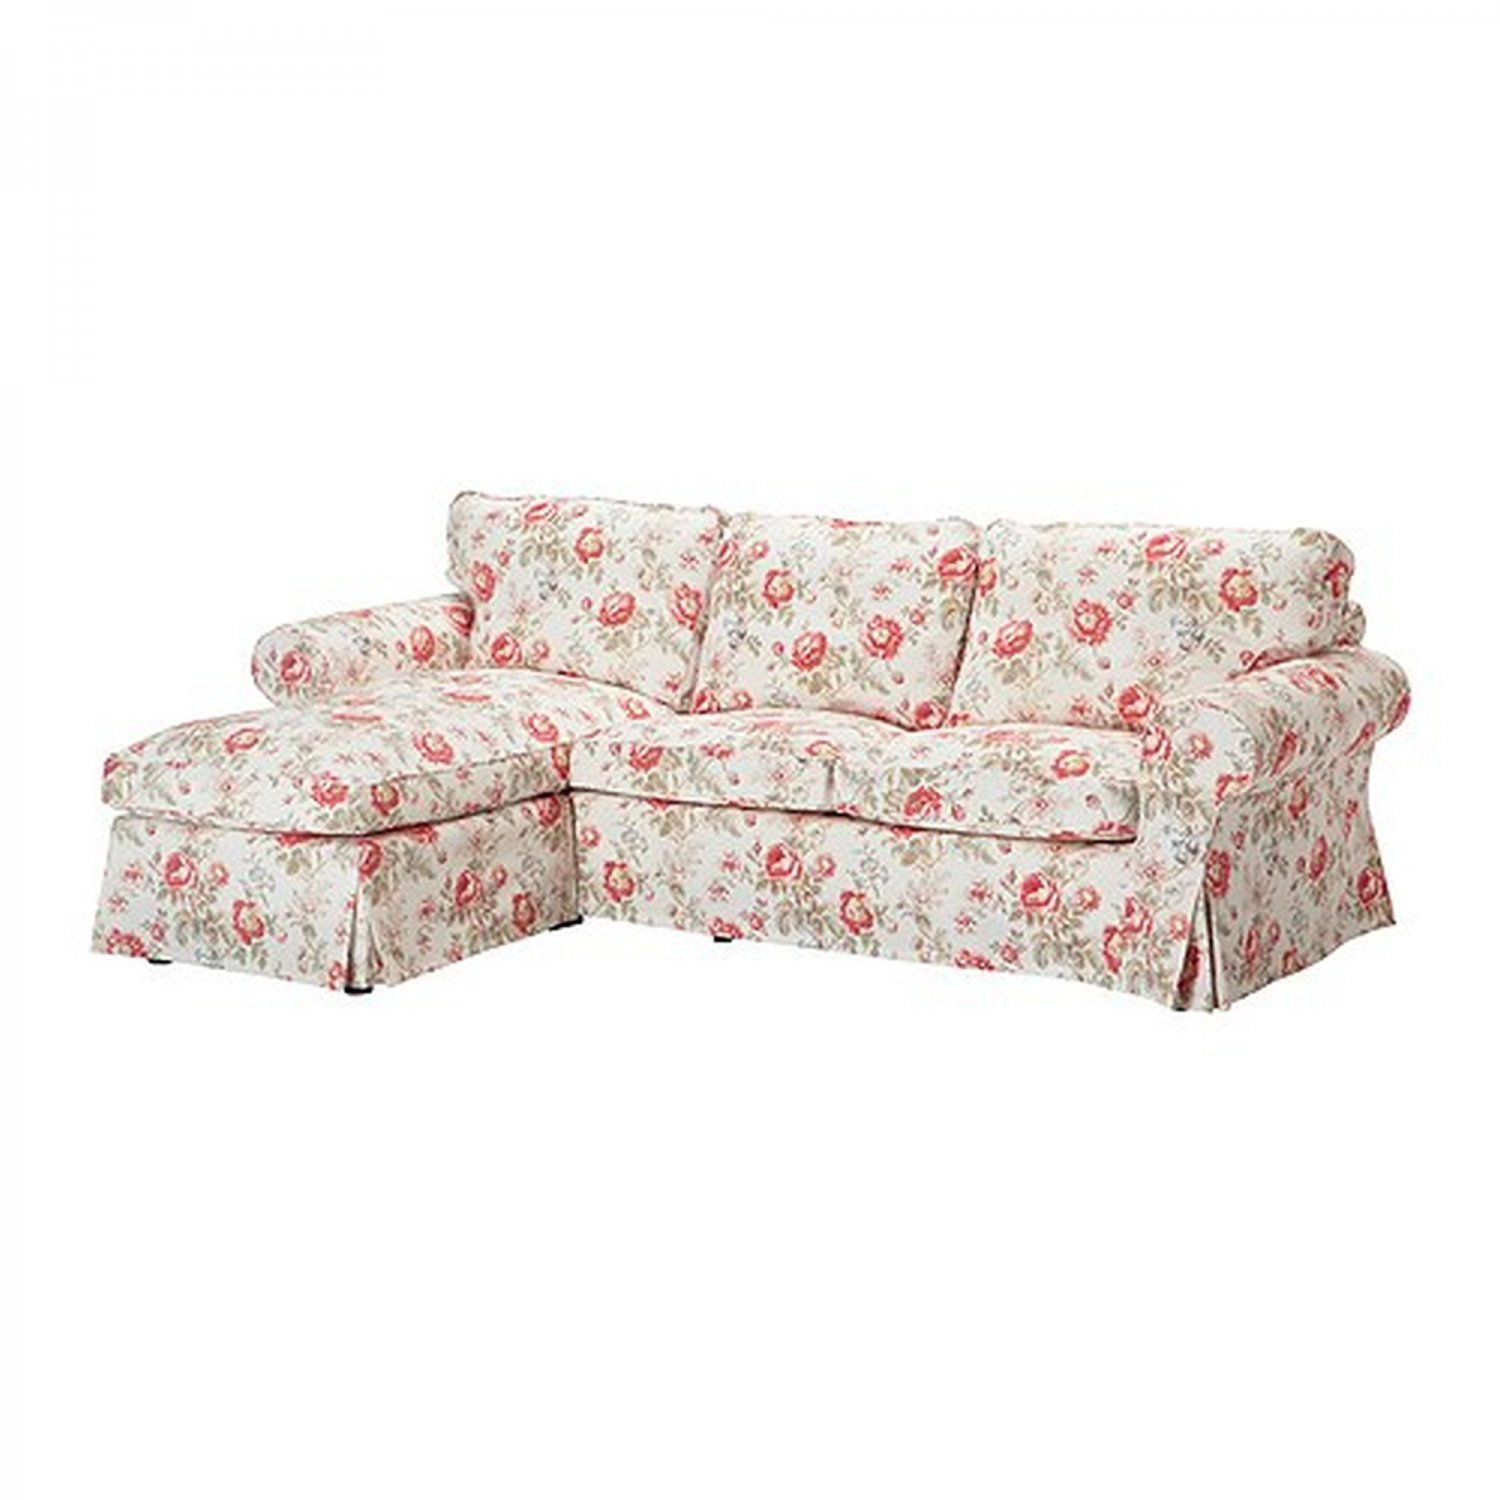 IKEA Ektorp Loveseat Sofa With Chaise COVER Slipcover